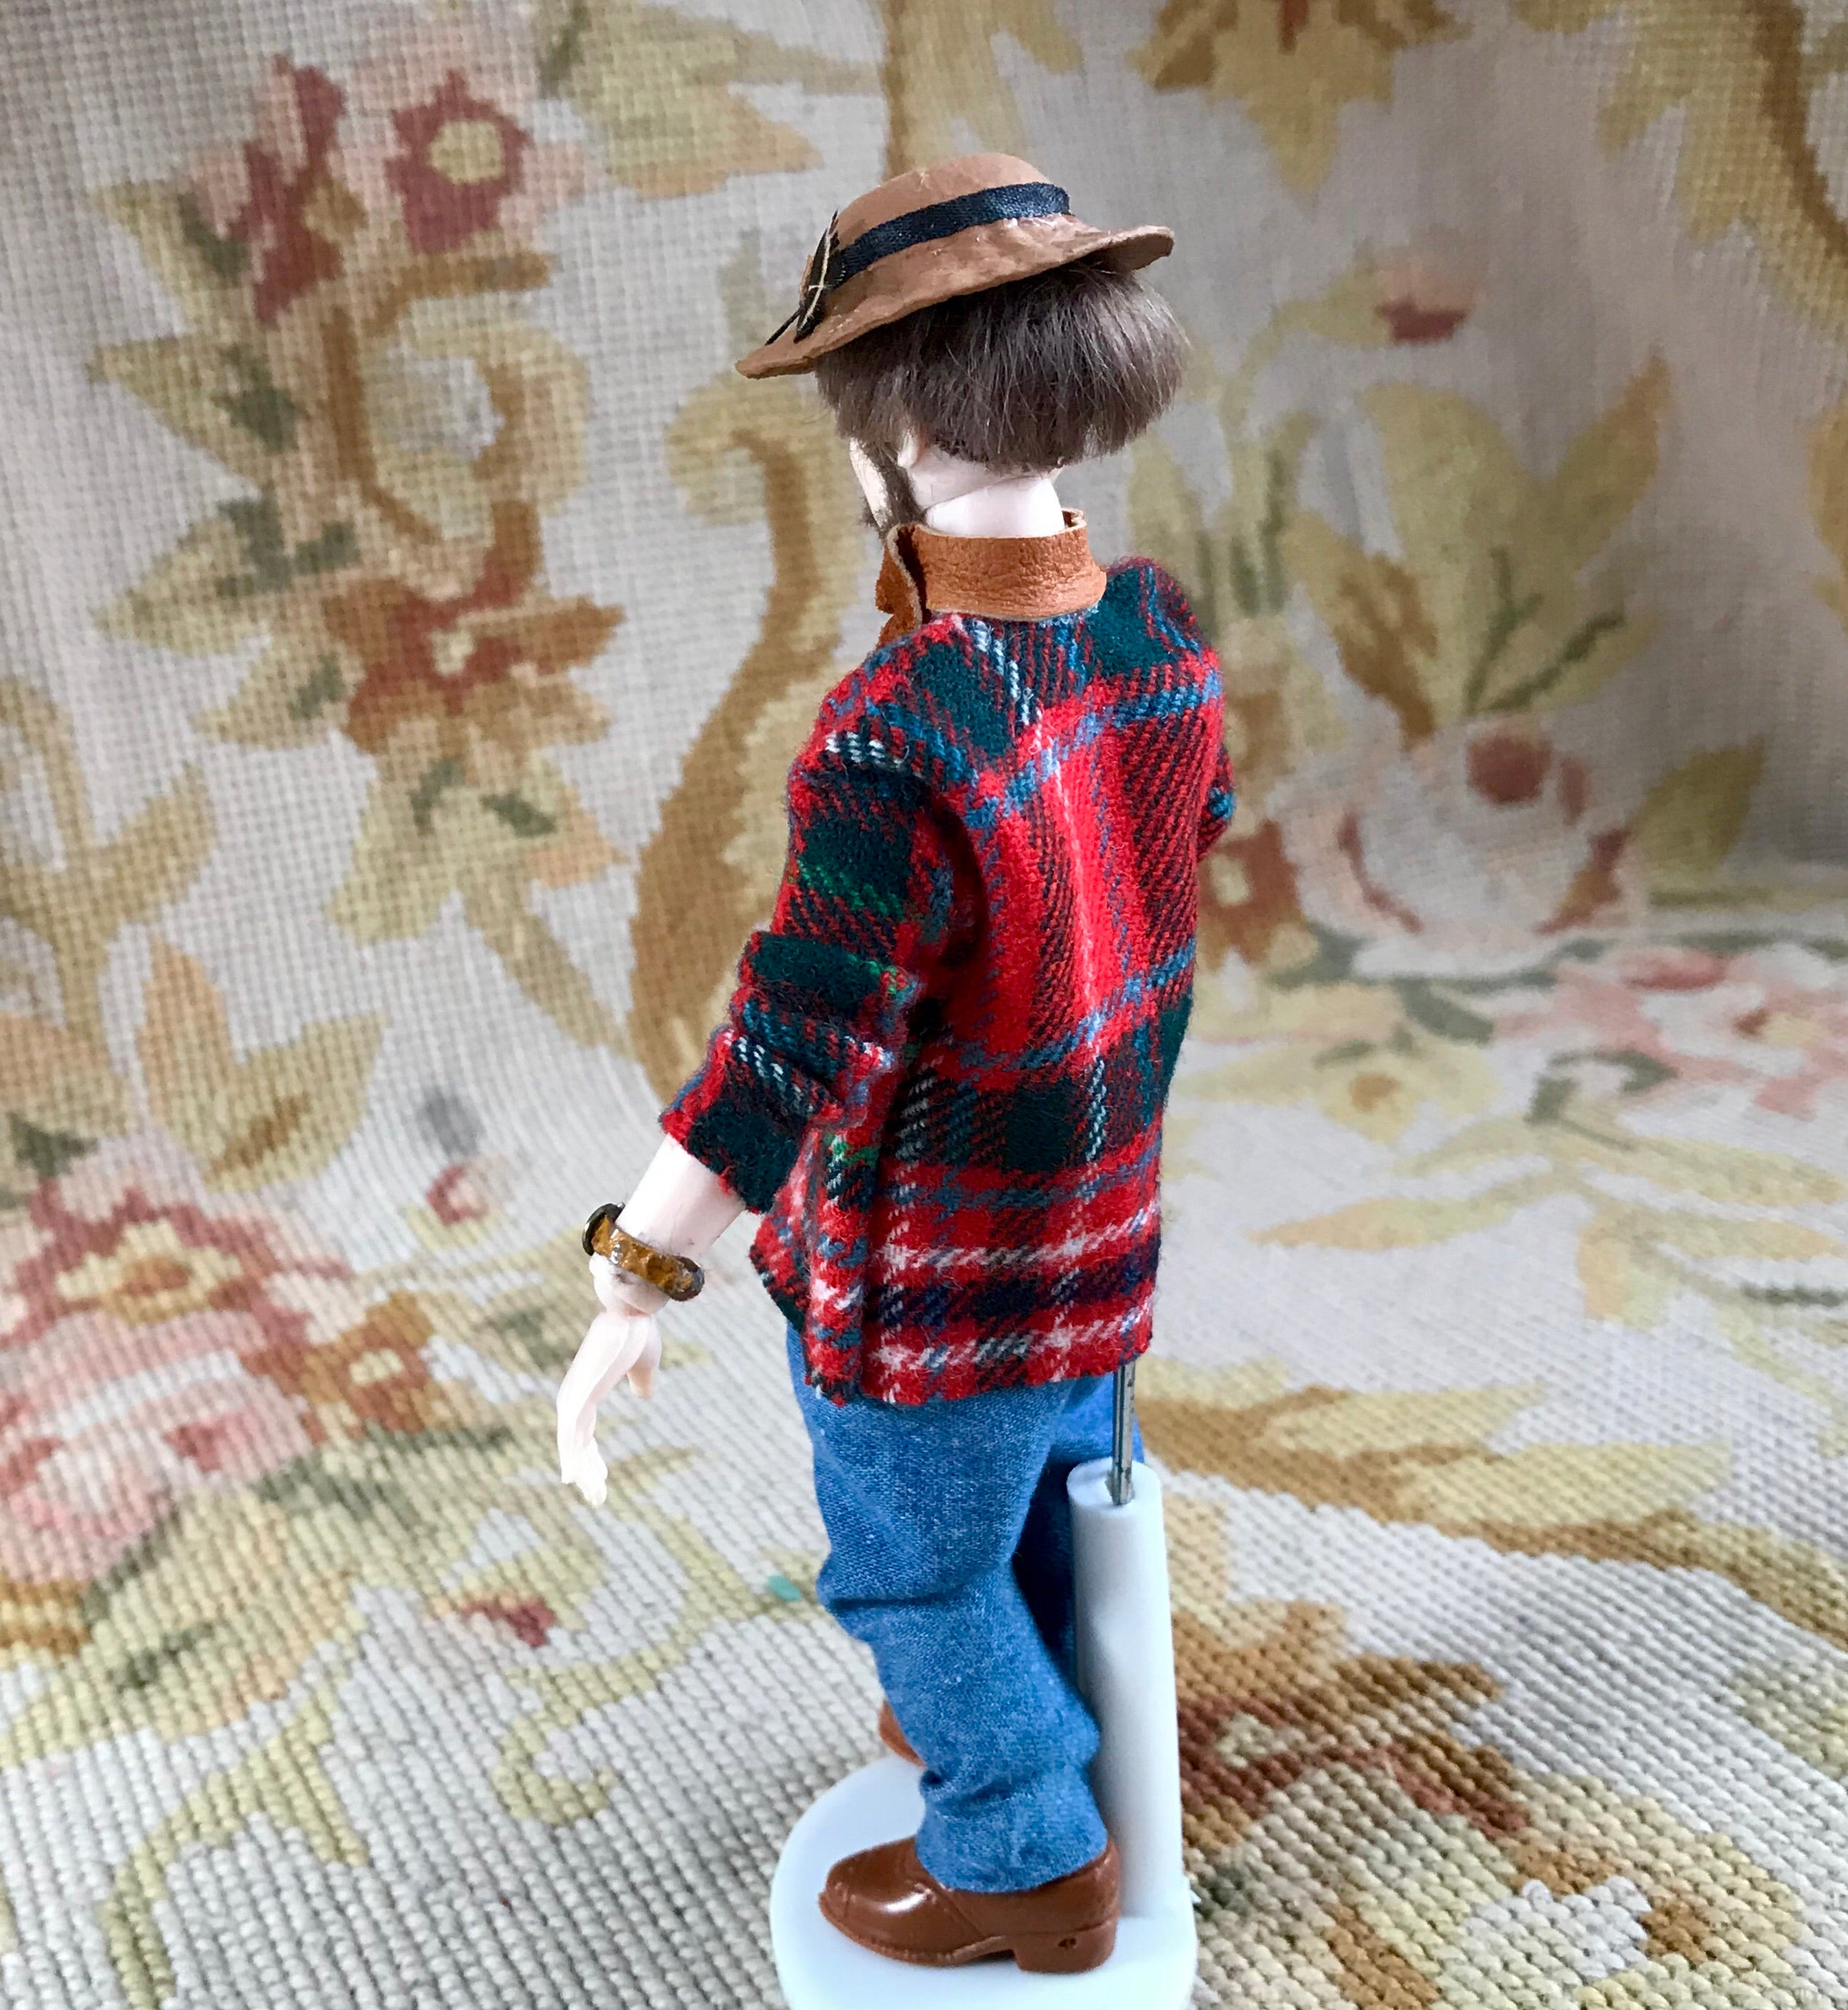 Doll Wearable Clothing Outfit Collection Male Heidi Ott 1:12 Dollhouse Miniature